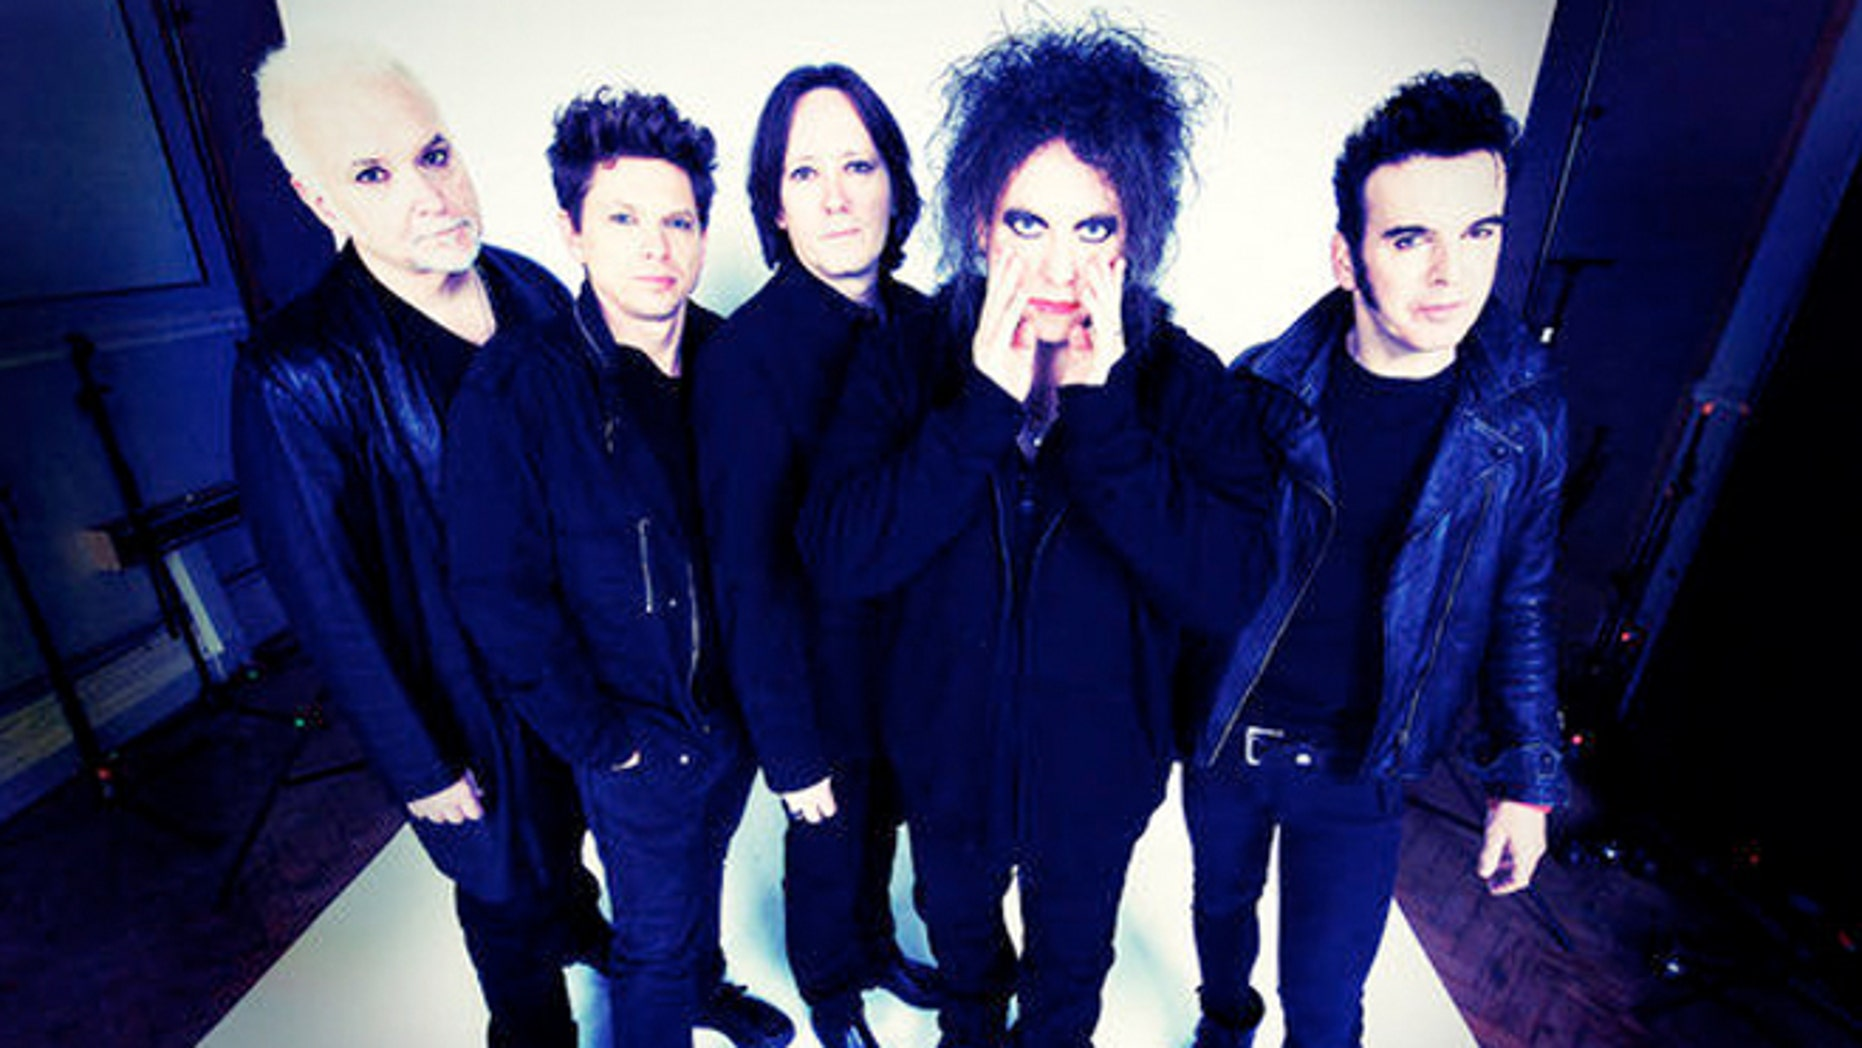 The Cure will play at 2013 Voodoo Fest in New Orleans' City Park.